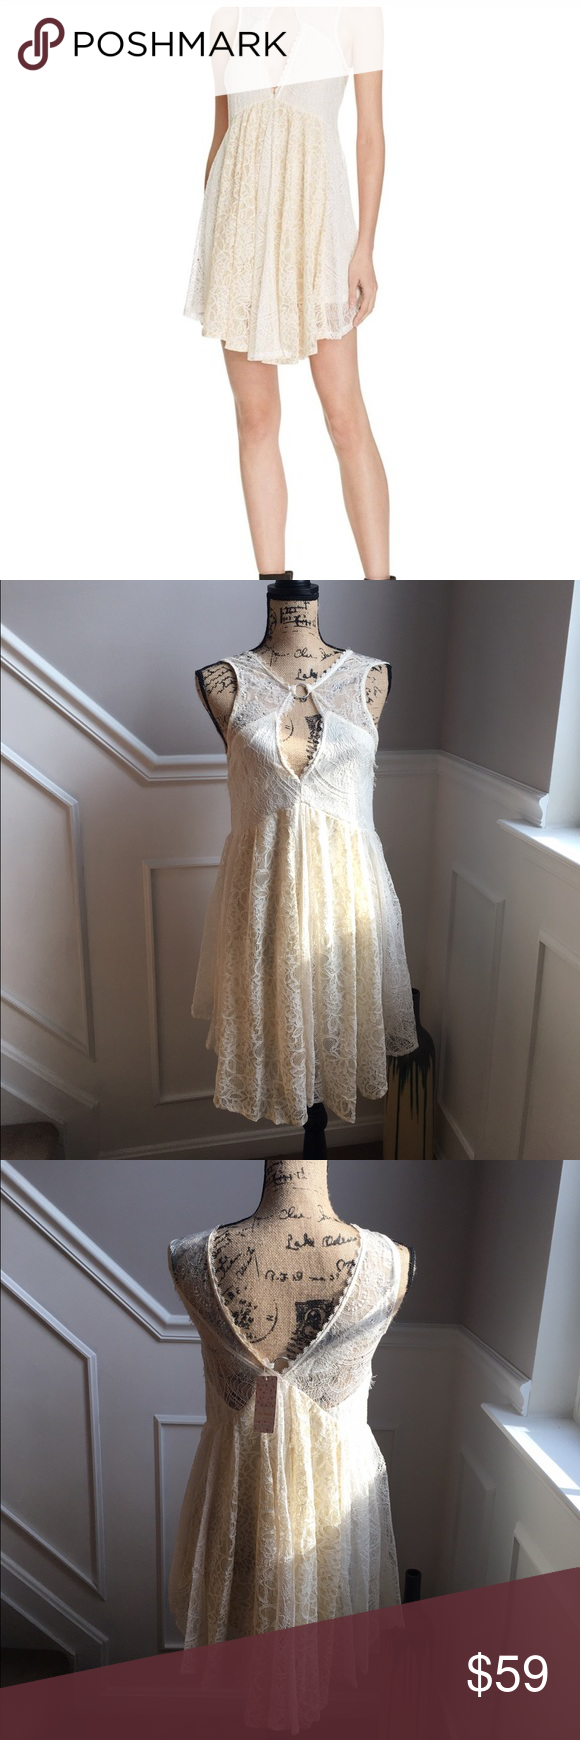 """NWT Free People Lace dress. XS Ivory/cream NWT. """"Don't you dare"""" lace dress from Free People in ivory/cream. Fashioned into a babydoll silhouette and edged up with cutouts and metallic rings, this Free People dress transforms ivory lace from classic to contemporary. Flowy. Round neck with ring detail, sleeveless, bust cutout. Empire waist, concealed zip side closure, asymmetric hem. V-back with ring detail, allover lace, partially lined. Approx. 35"""" from high point shoulder to hem. Free…"""